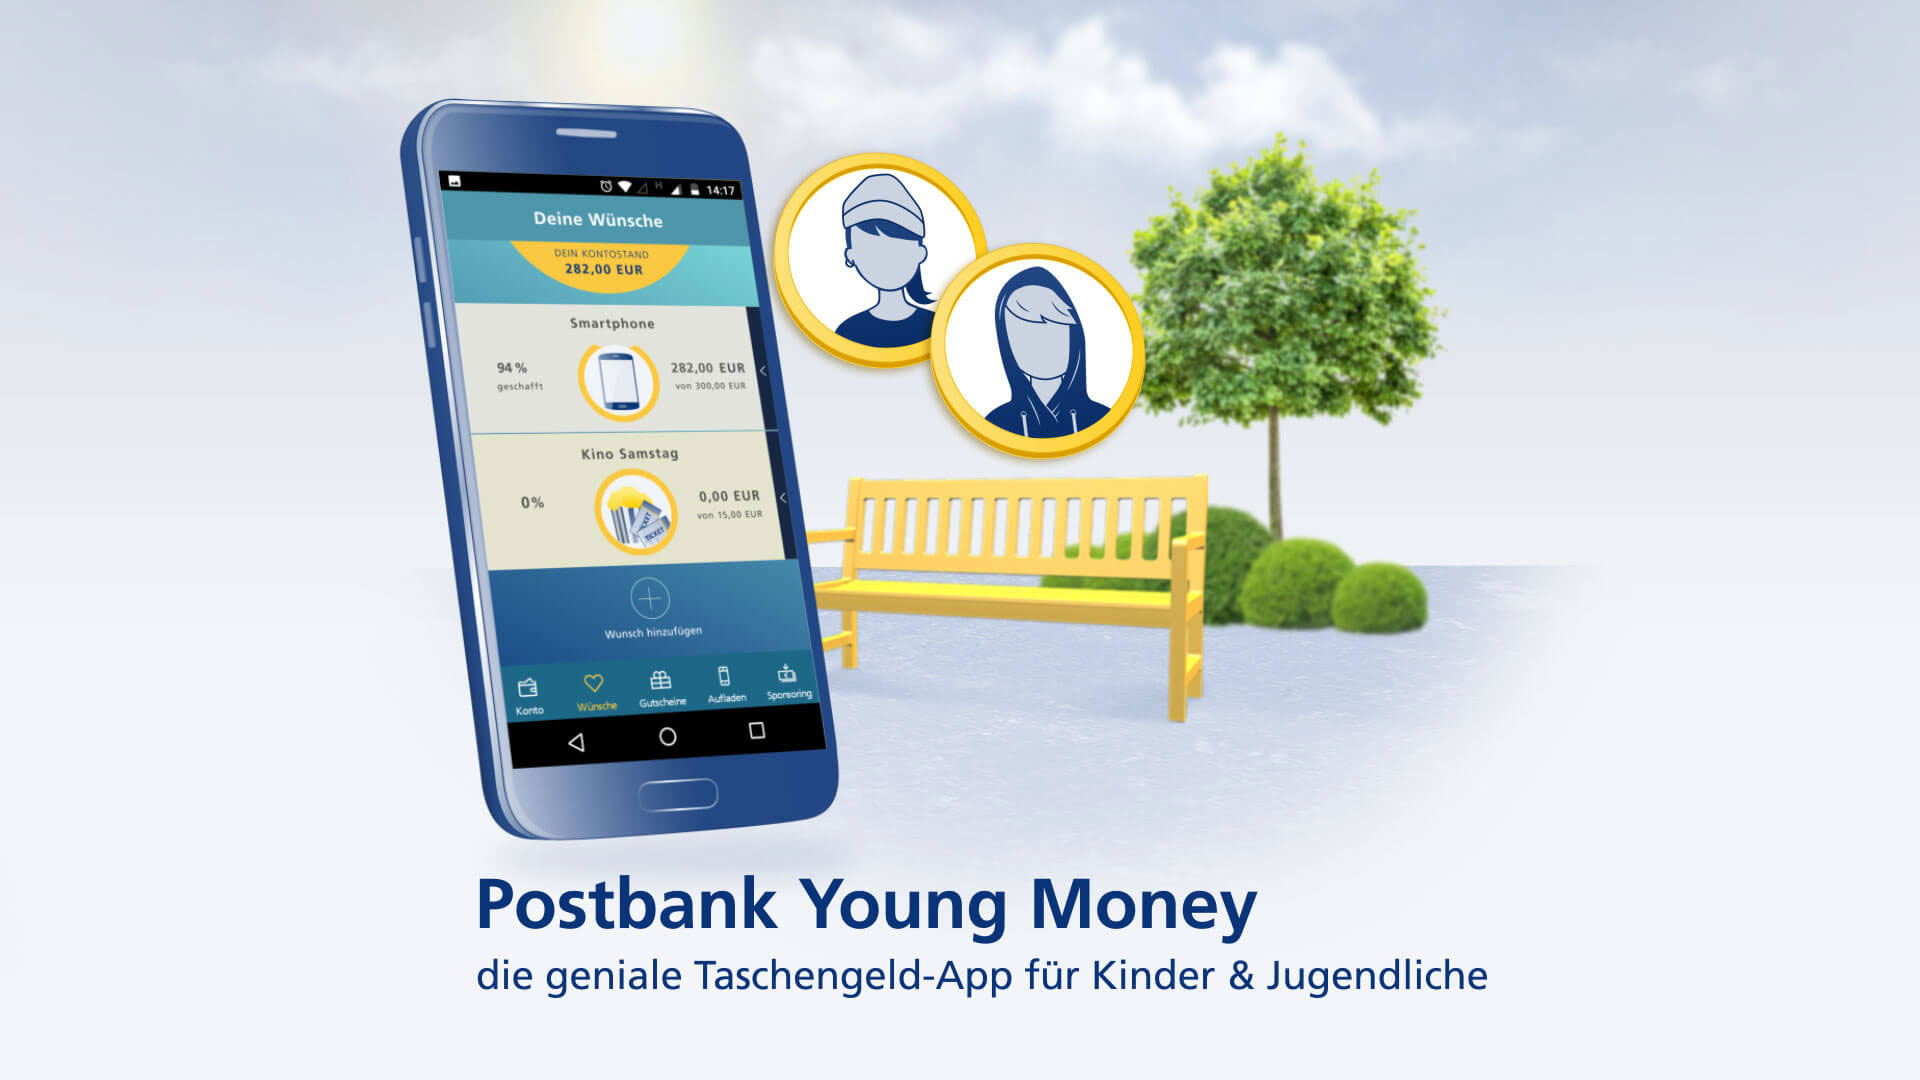 postbank-themenwelten-young-money-video-1920x1080.jpg